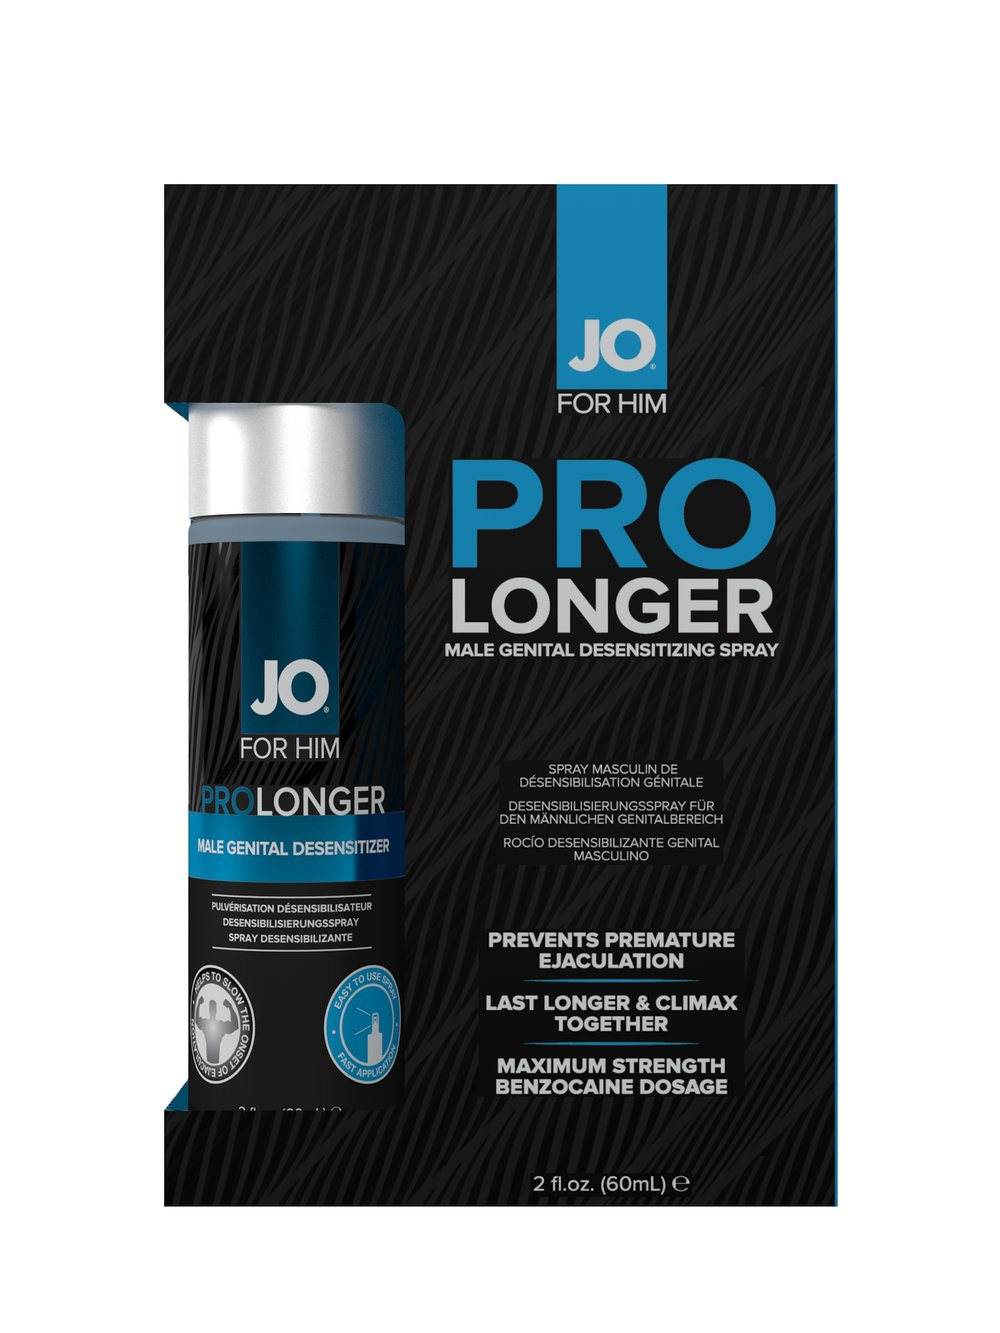 40216 - JO Prolonger Spray Benzocaine 2oz A.jpg